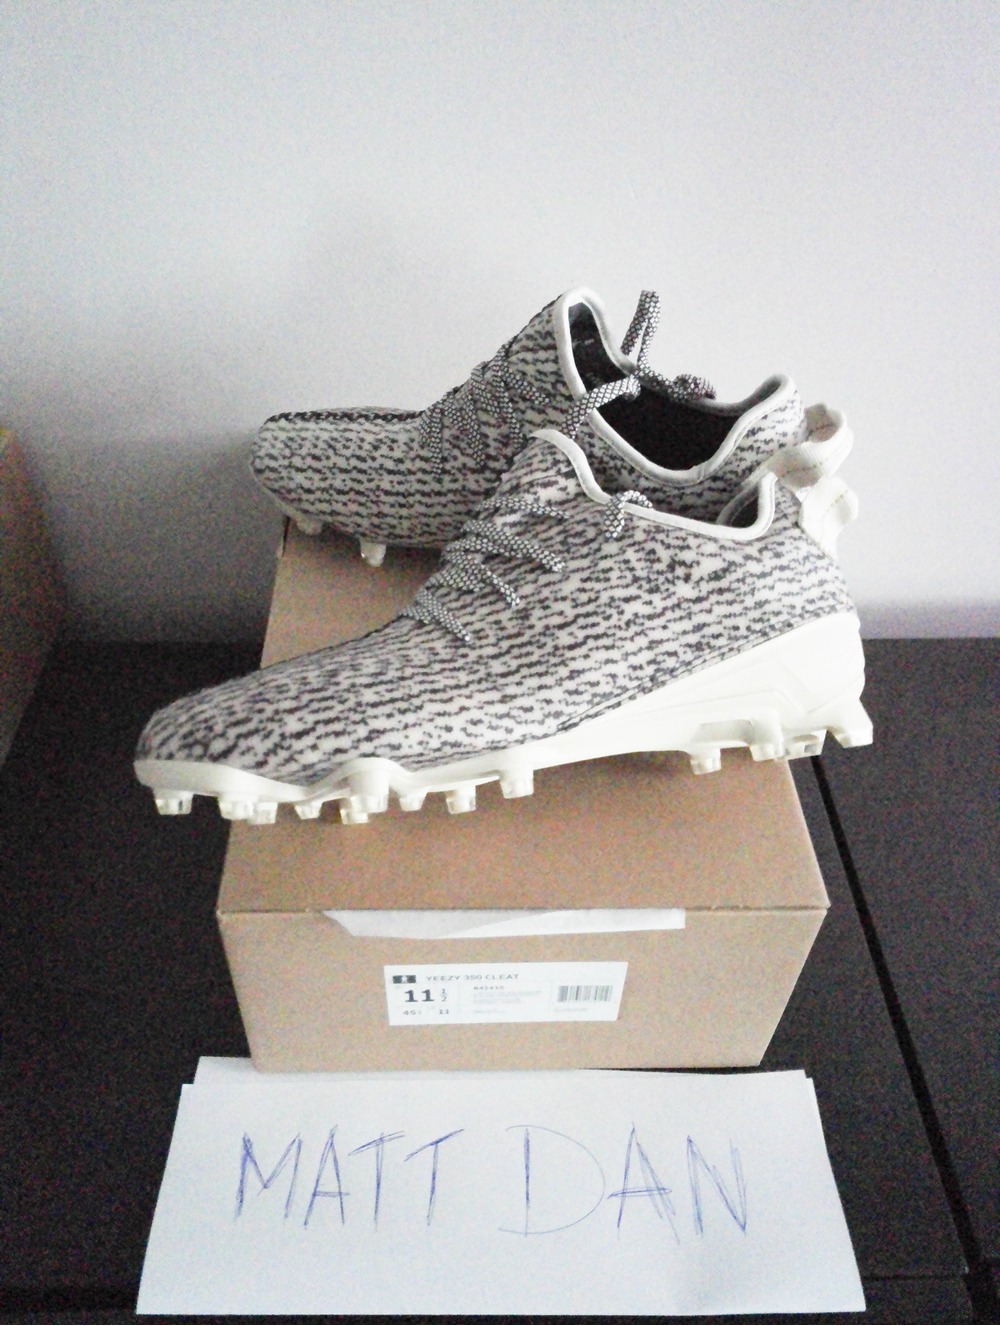 Texans' Hopkins shows off Yeezy 350 cleats